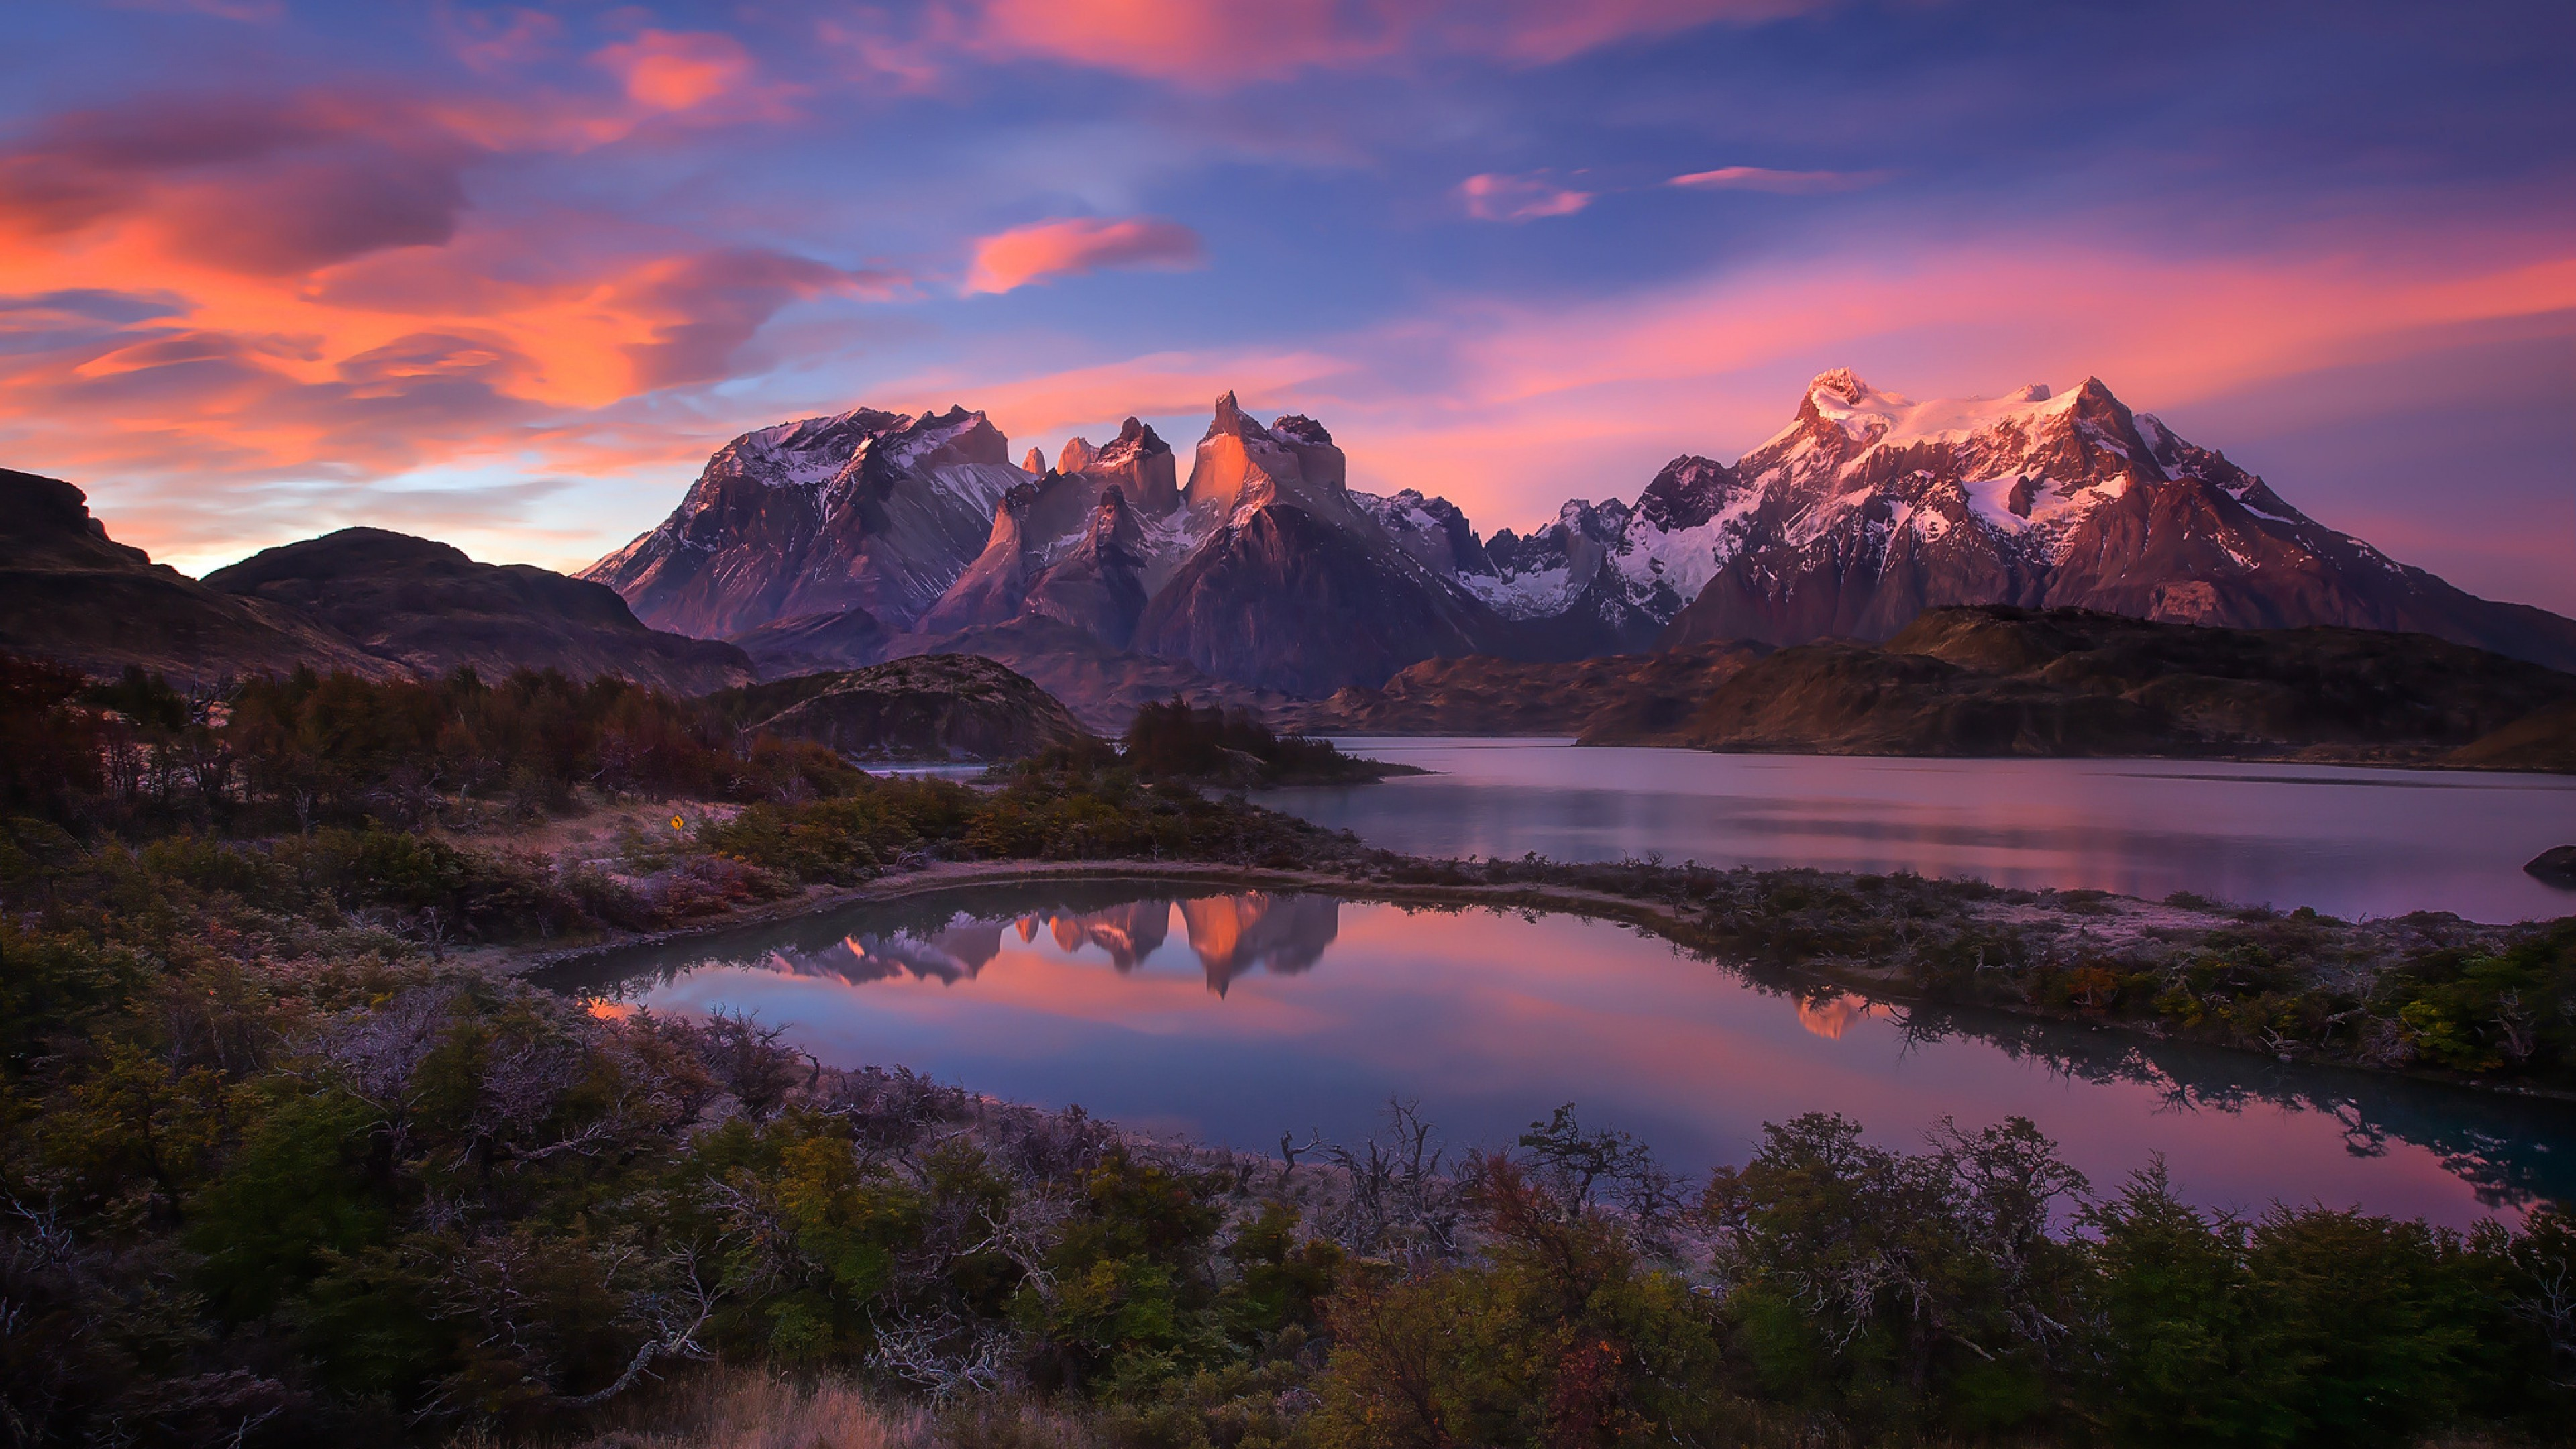 Must see Wallpaper Mountain Nokia - south-america-patagonia-andes-mountains-lake  Trends_856621.jpg